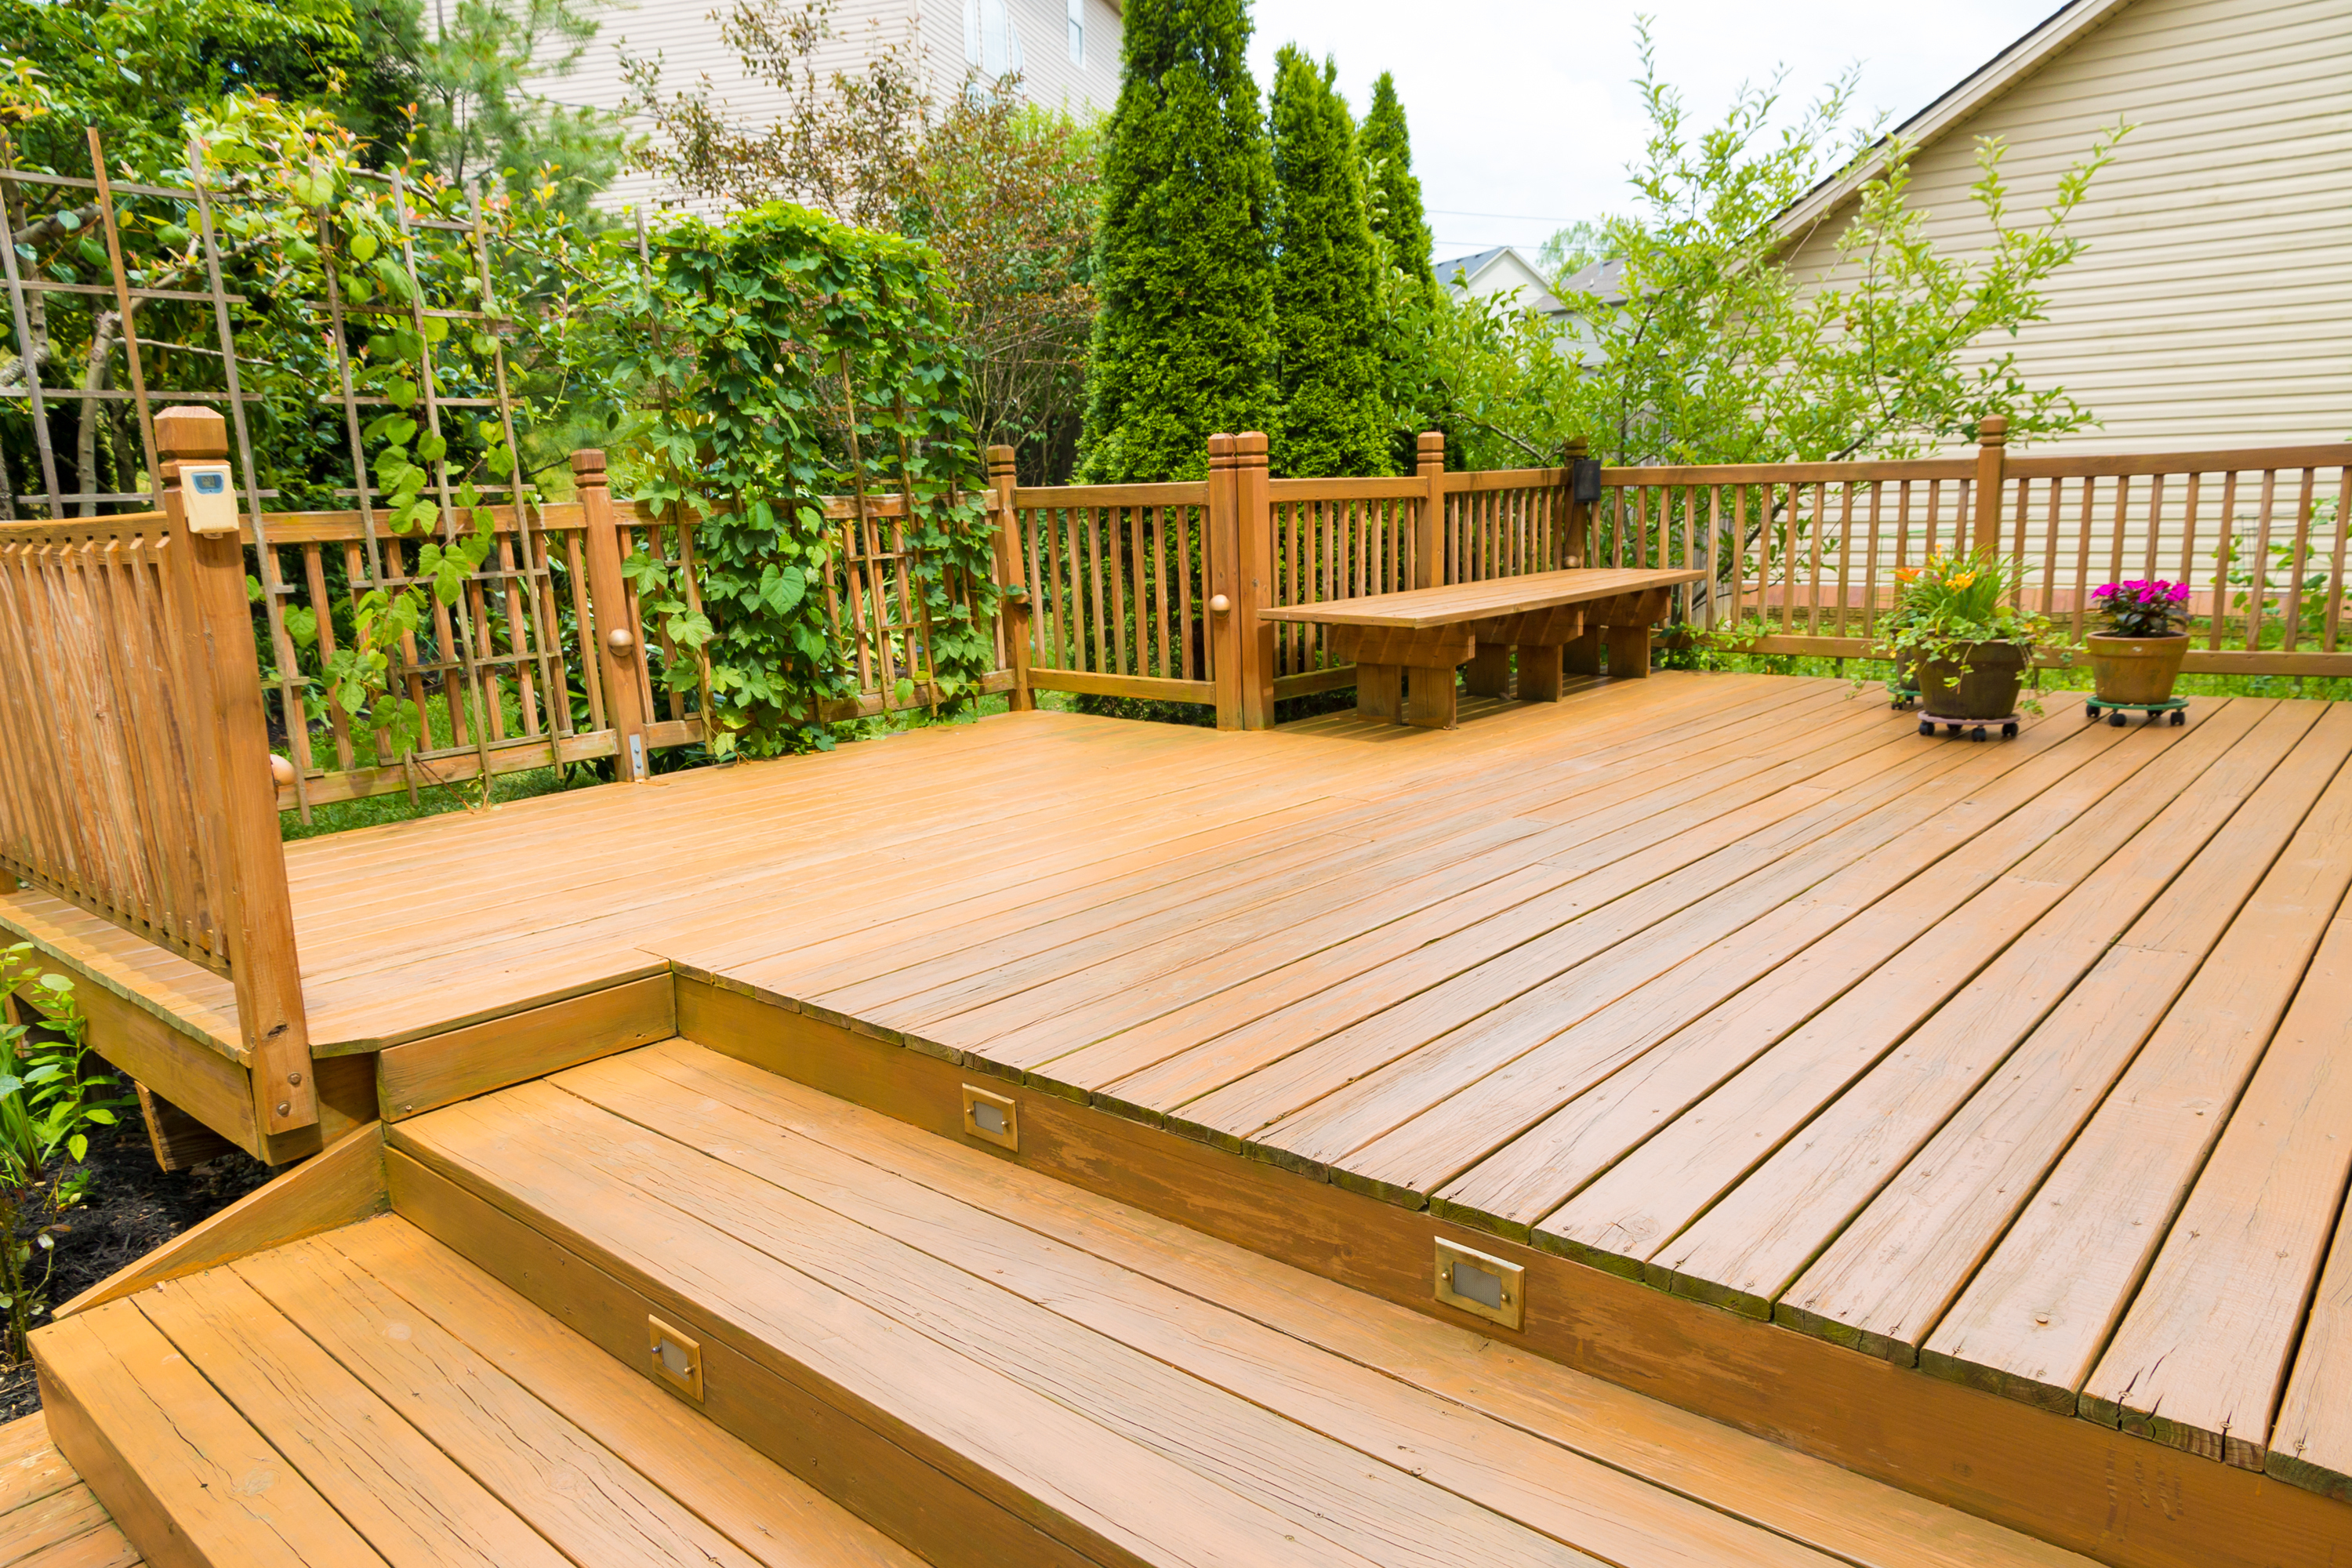 Building A Deck On Slope Can Be Tricky But You Easily Do It When Know What Steps To Follow The Disadvantages